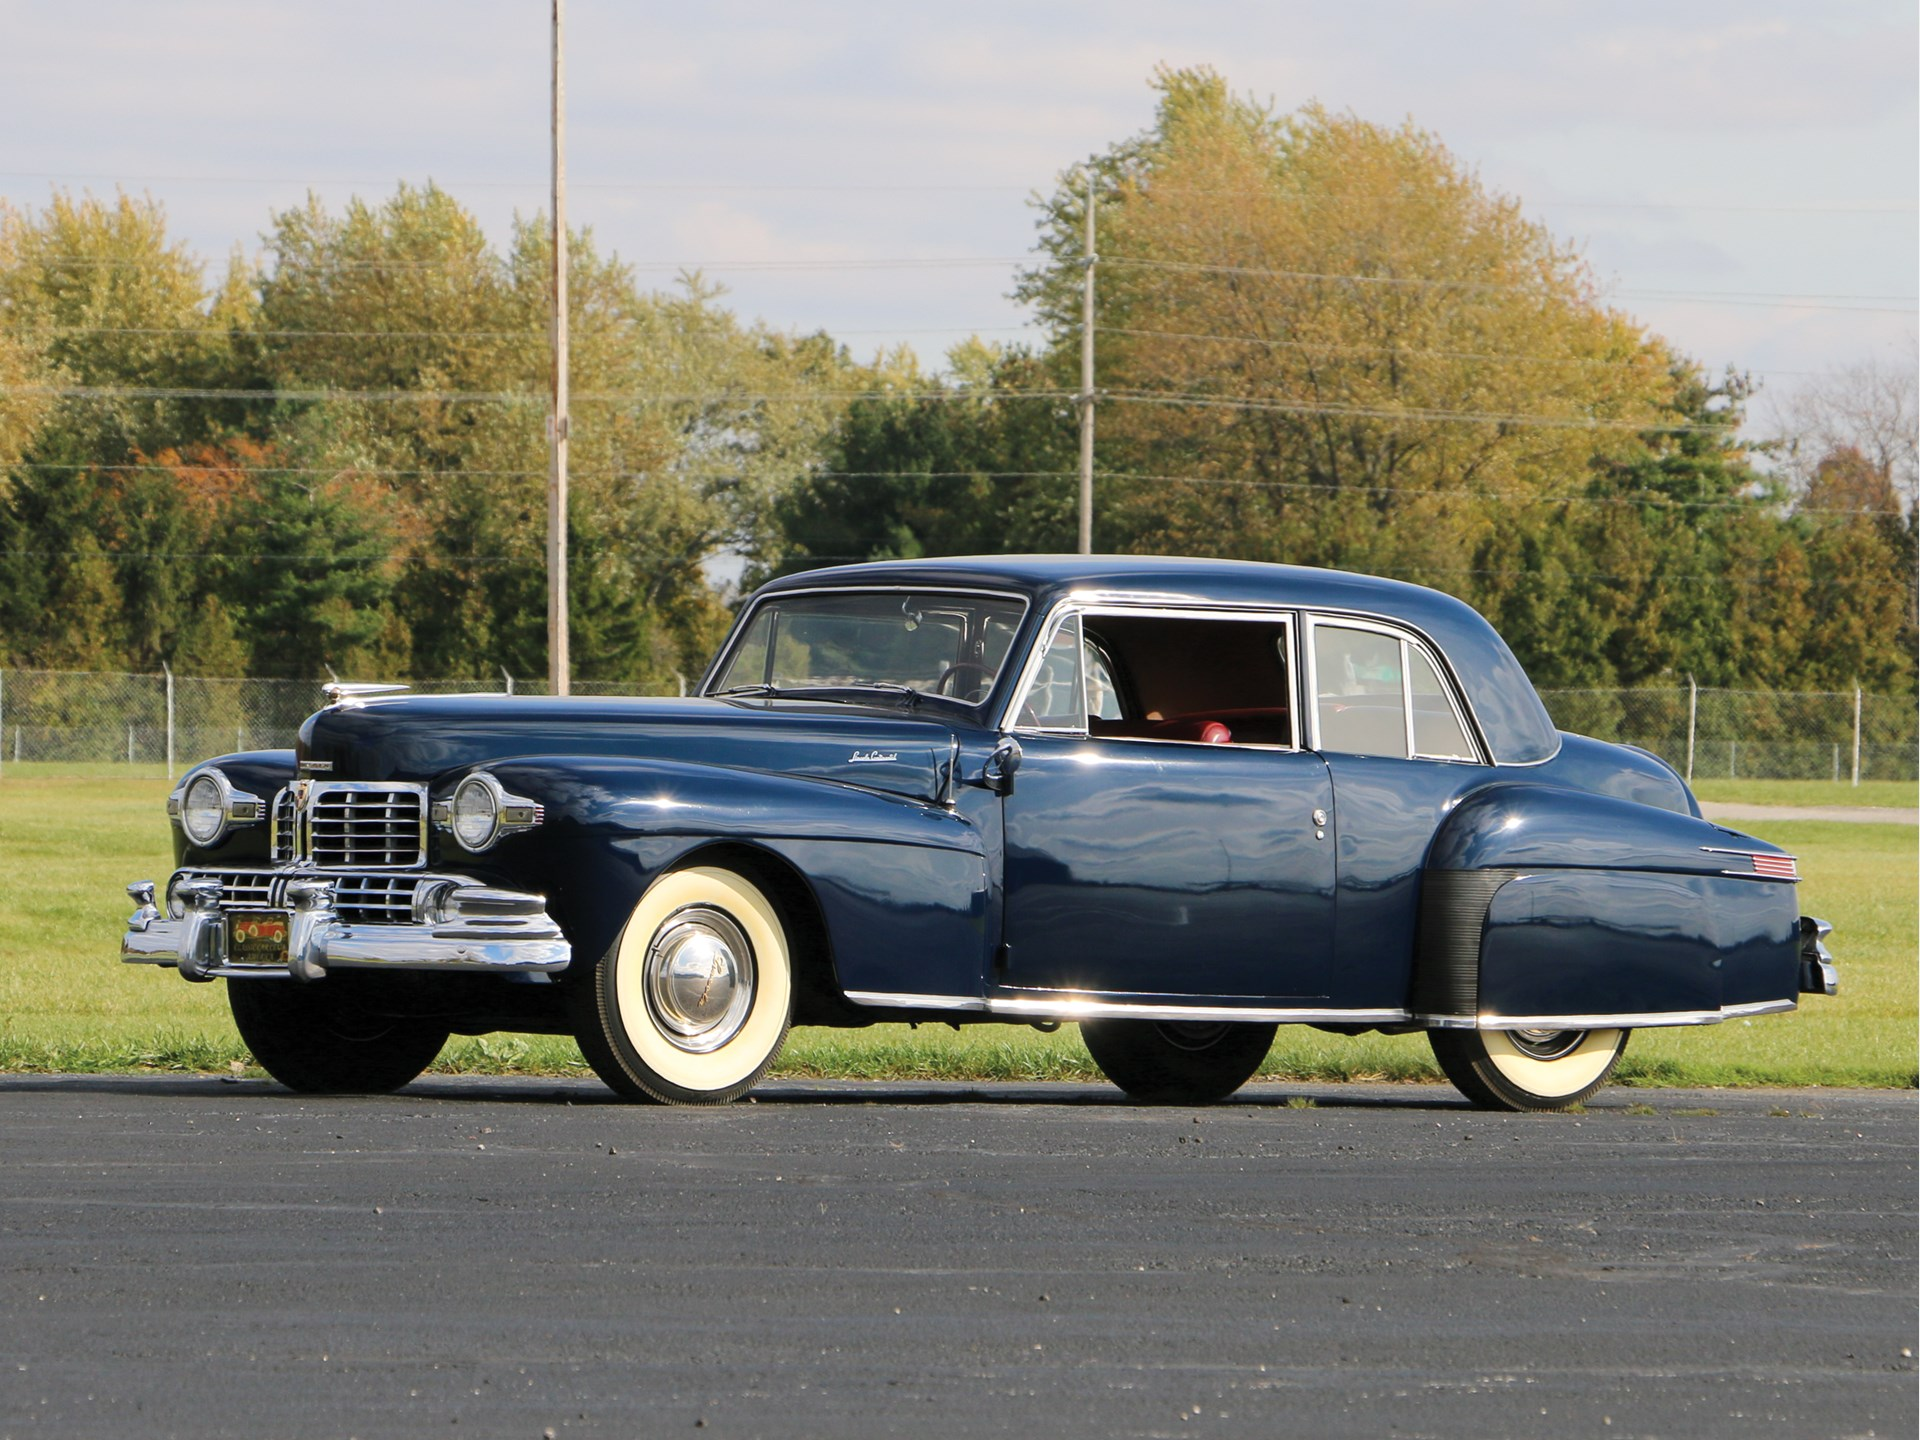 Example of a 1948 Lincoln Continental similar to Babe Ruth's front 3/4